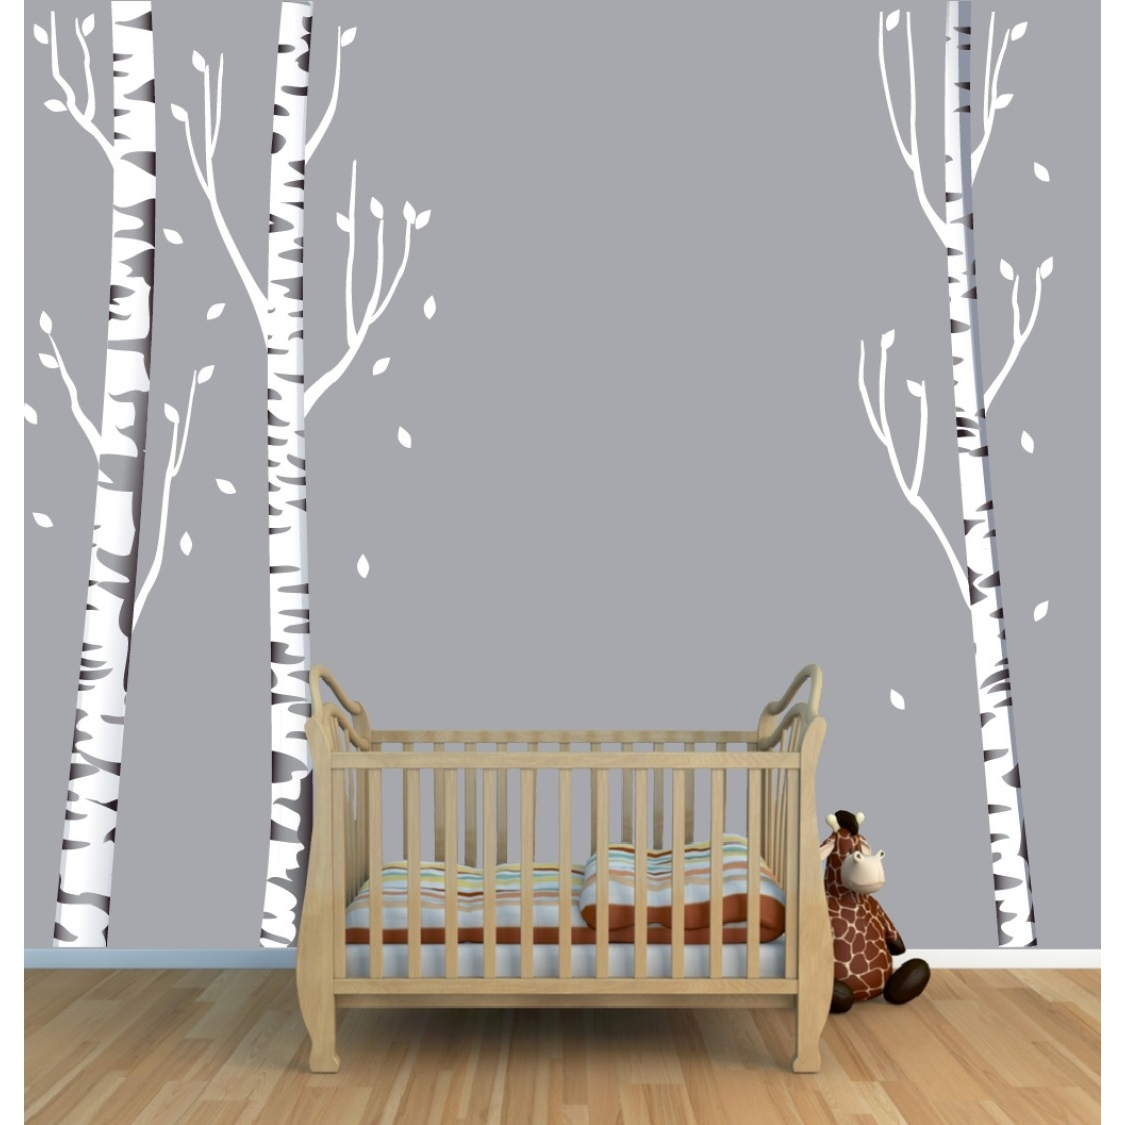 Birch Tree Wall Art Intended For Recent Tree Wall Art With Birch Tree Wall Decals For Kids Rooms (Gallery 4 of 20)